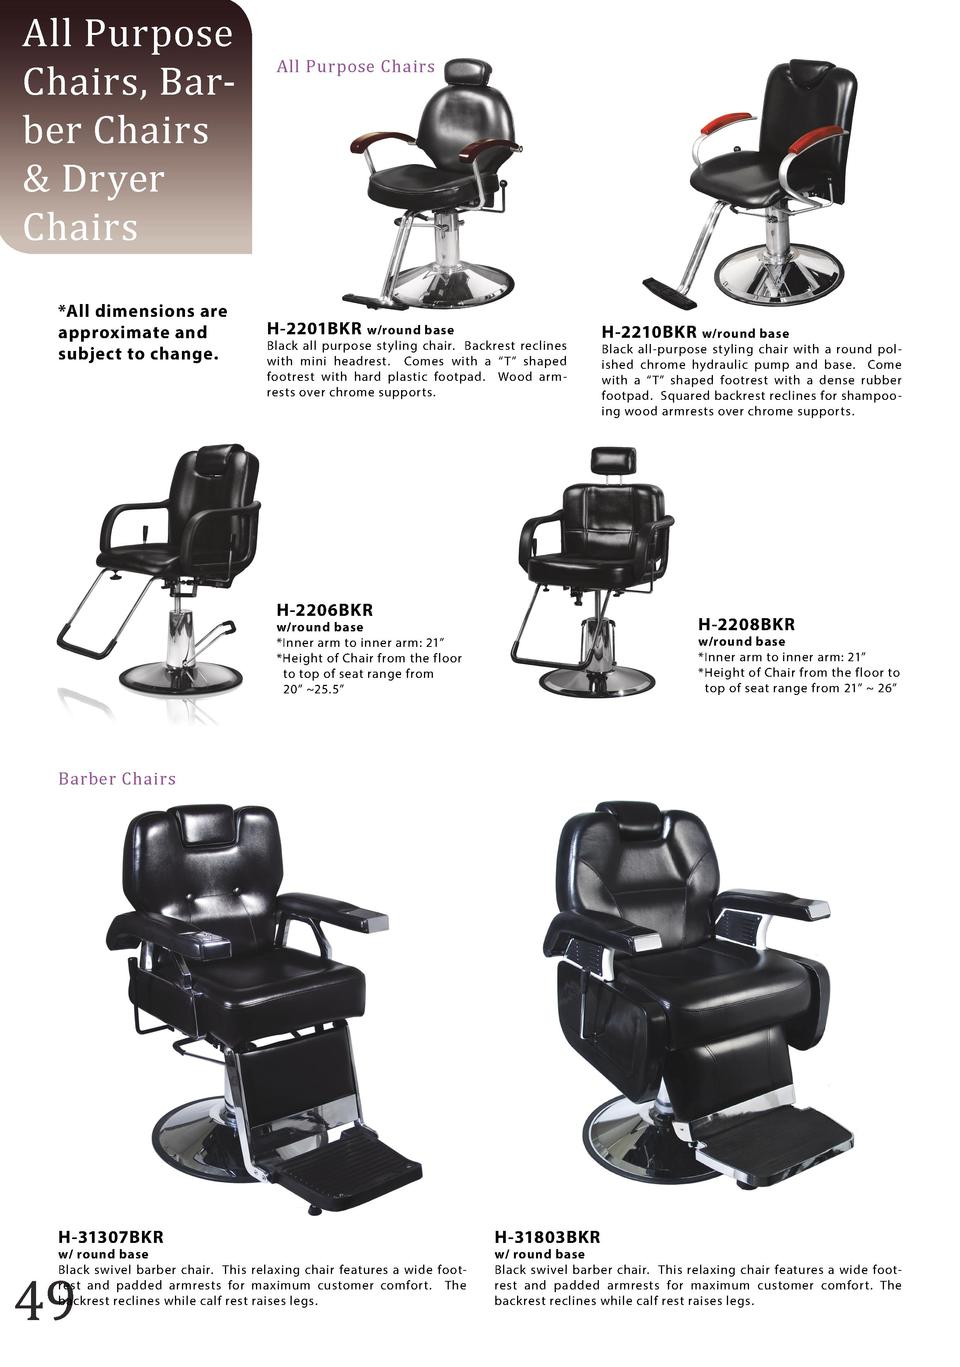 Salon chair dimensions - All Purpose Chairs Barber Chairs Dryer Chairs All Dimensions Are Approximate And Subject To Change